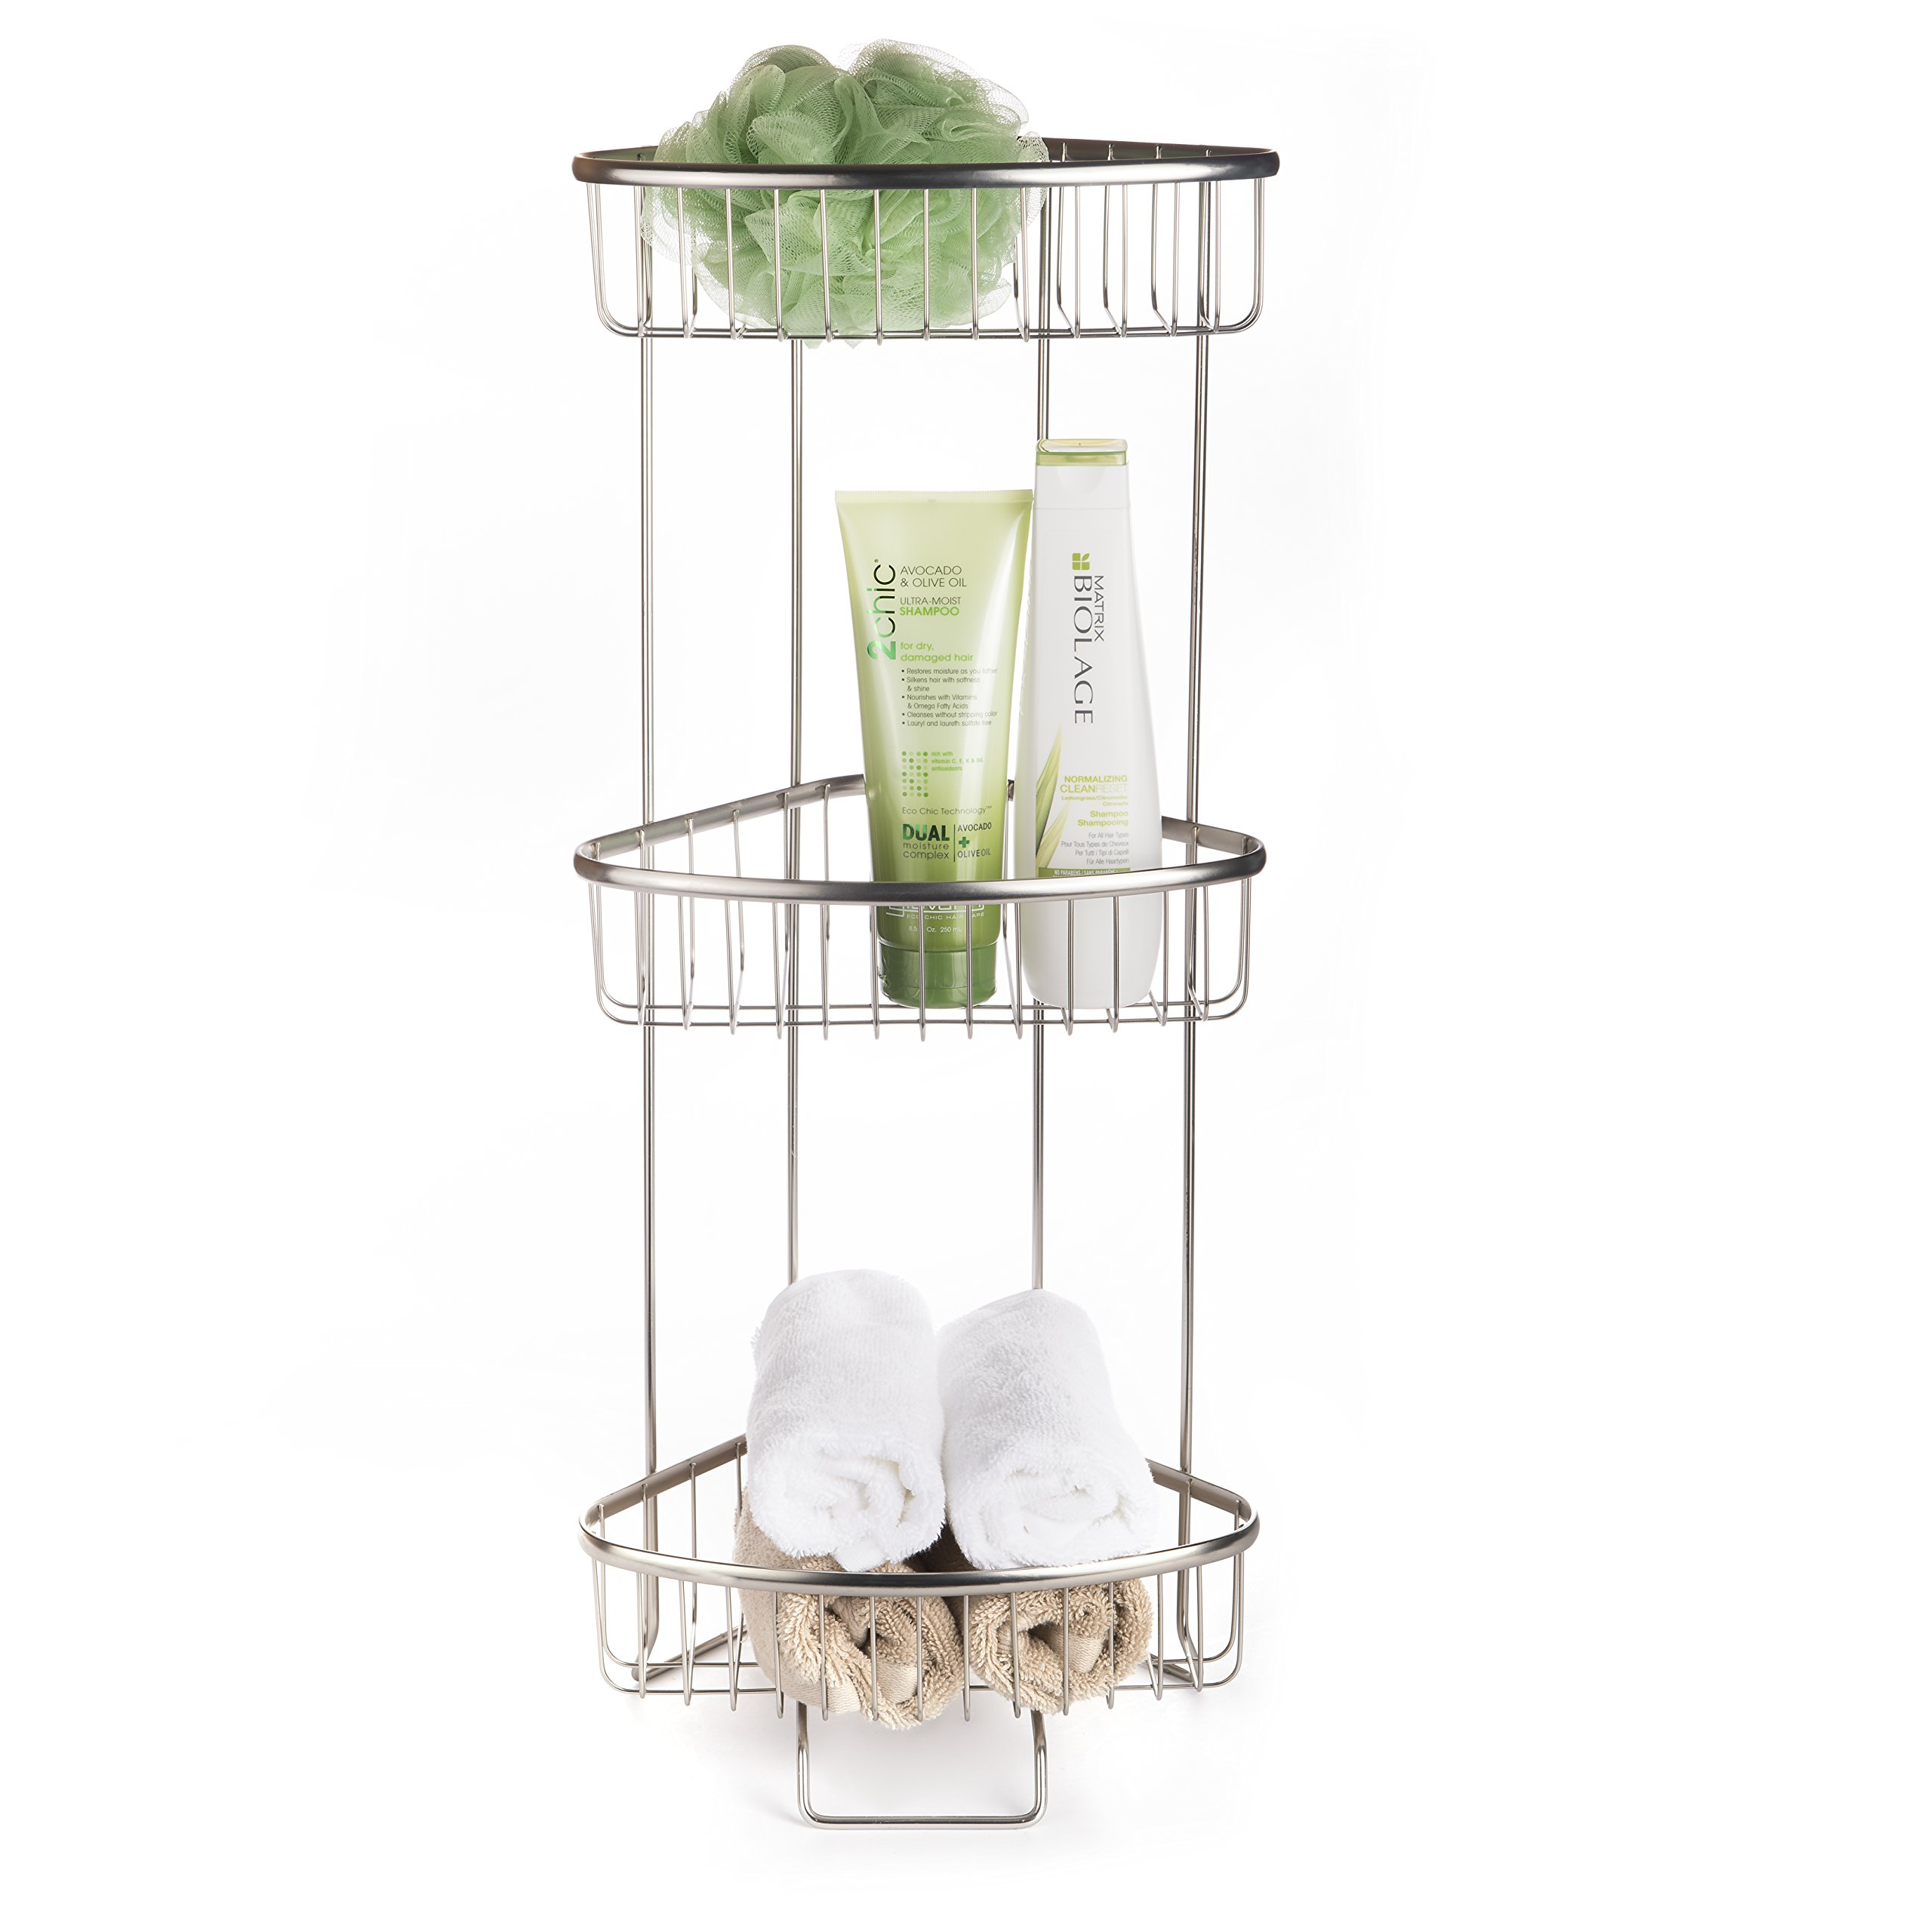 AMG and Enchante Accessories Free Standing Bathroom Spa Tower Storage Caddy, FC100003 SNI, Satin Nickel